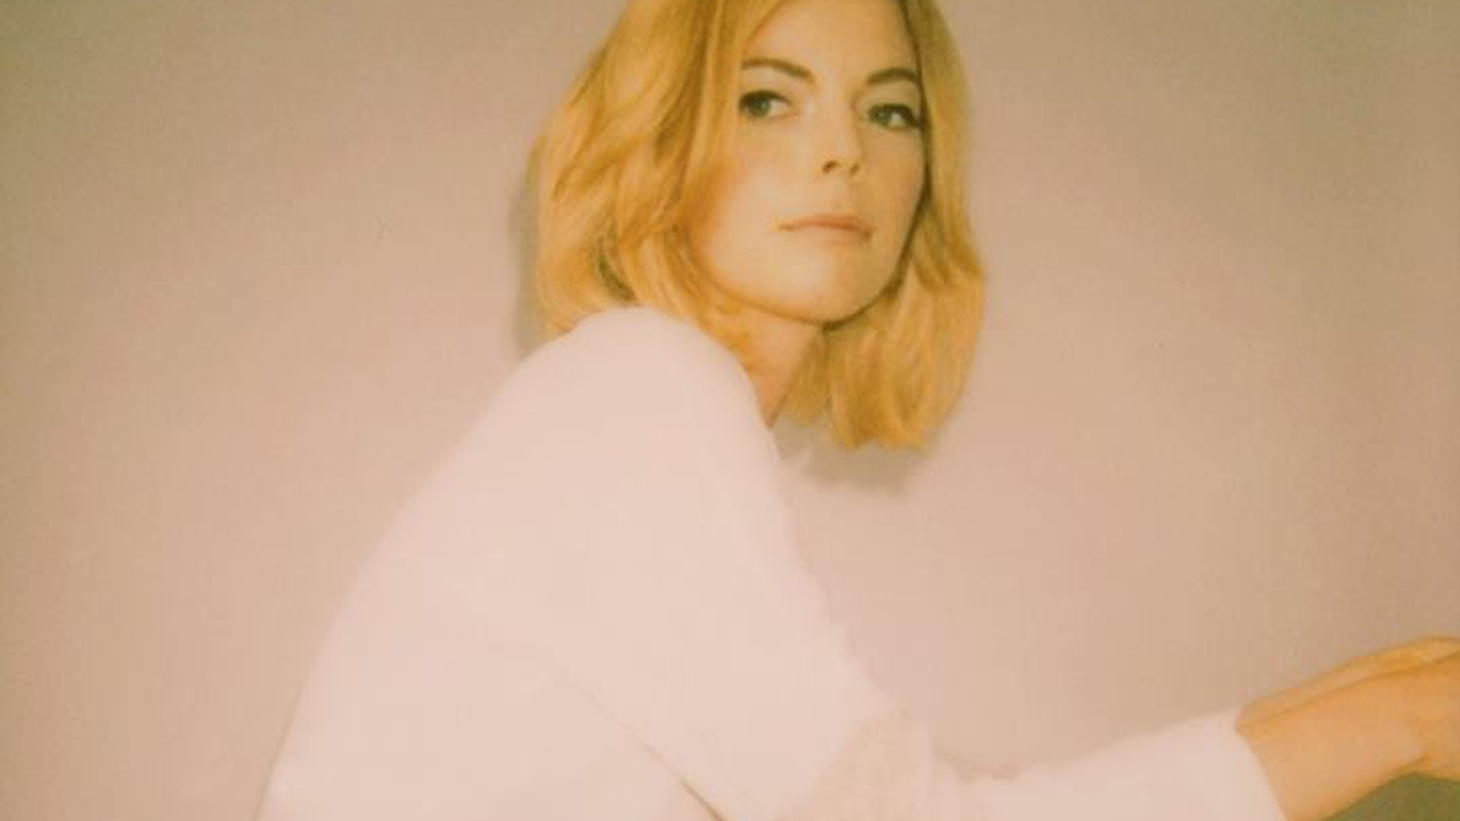 """Cali native Odessa was born and raised by the ocean, which may explain why her siren song is so sweet, melodic and introspective. A touring member of Edward Sharpe and the Magnetic Zeroes, her new EP features Today's Top Tune """"I Will Be There""""."""